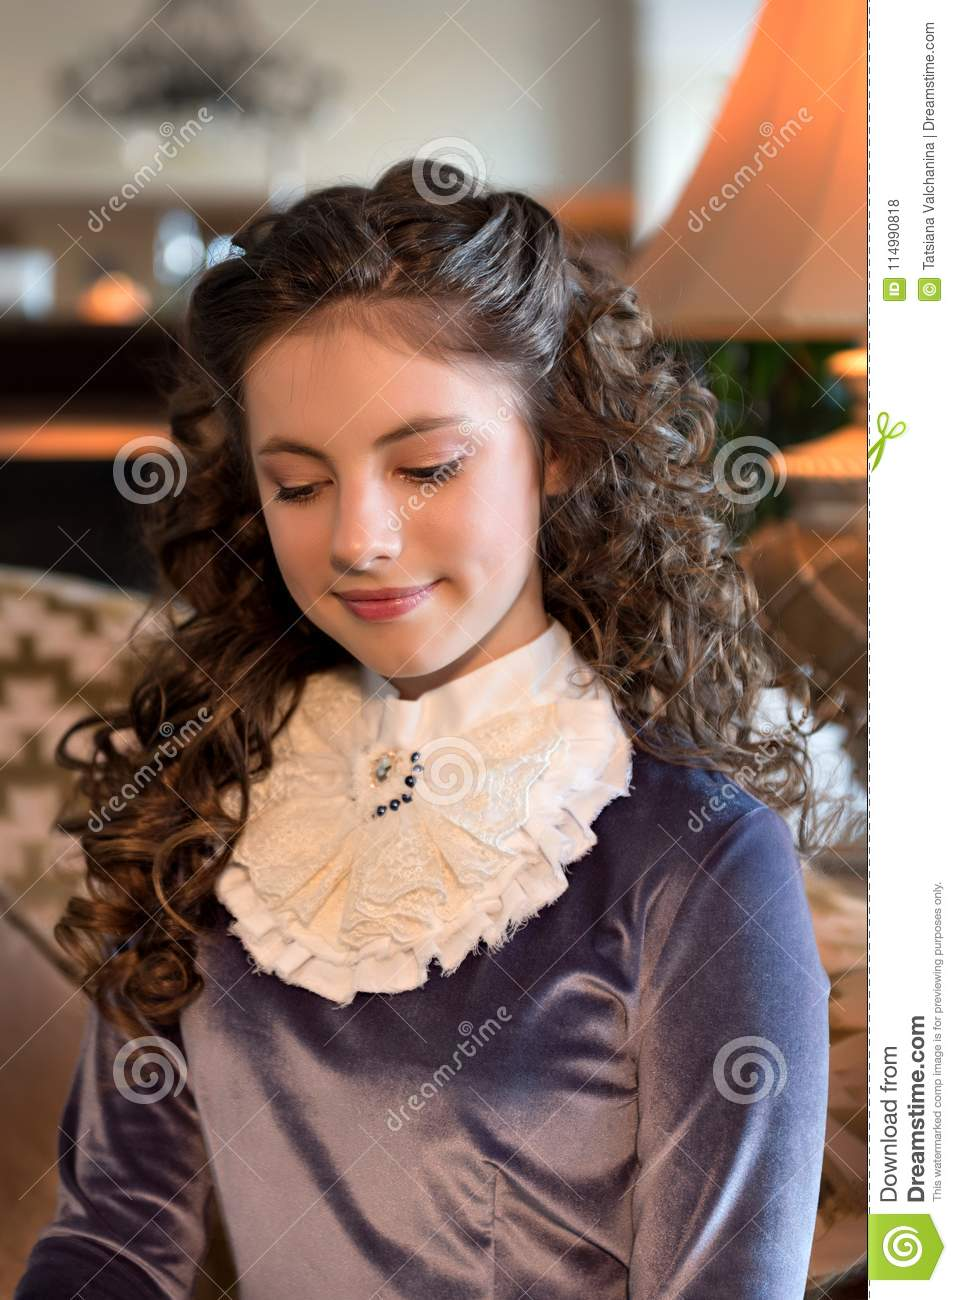 Portrait of a modest girl in an old-age interior and a vintage old-fashioned dress of the 1920s